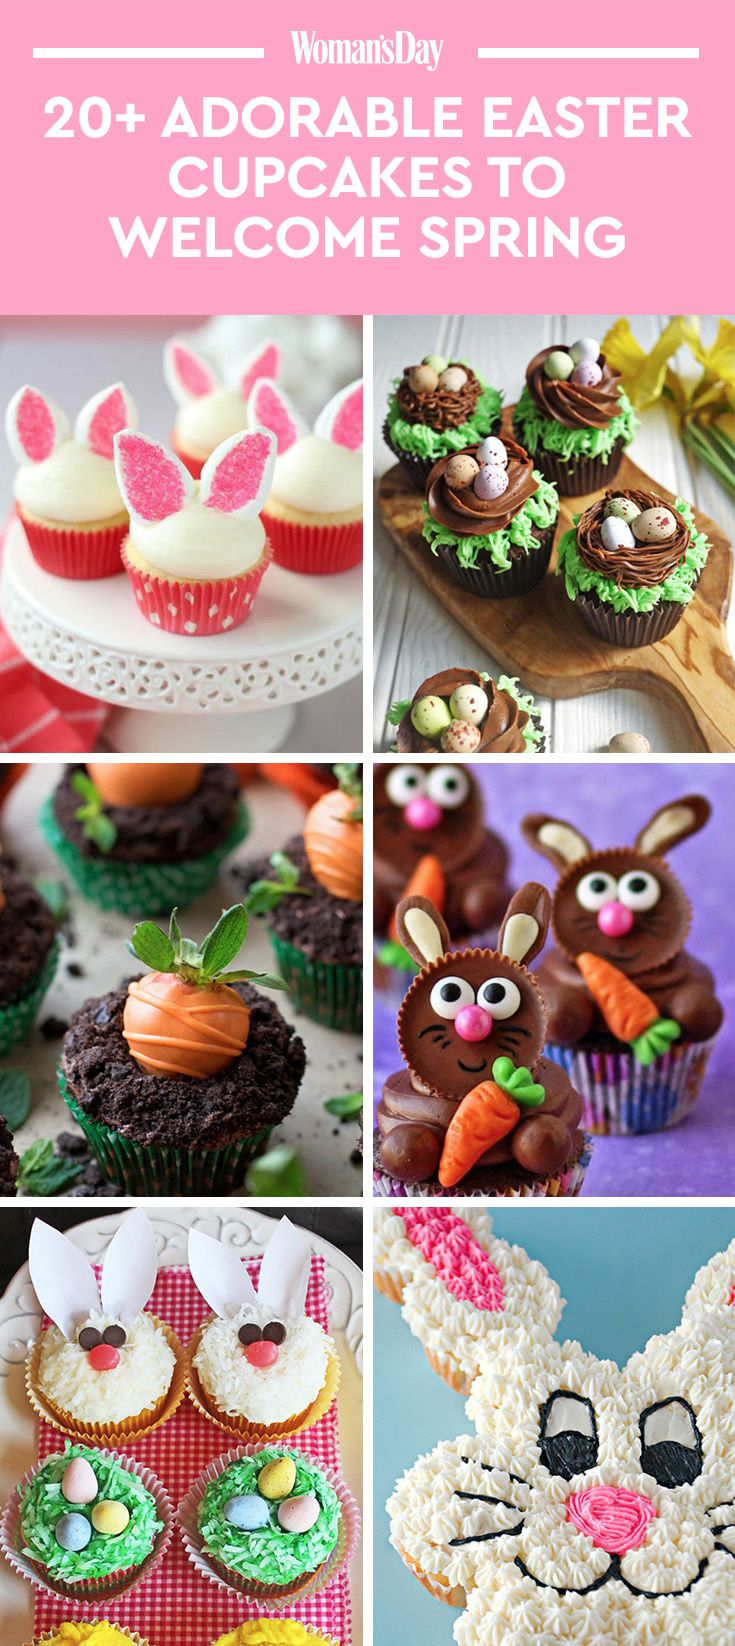 22 Cute Easter Cupcakes- Easy Ideas for Easter Cupcake Recipes